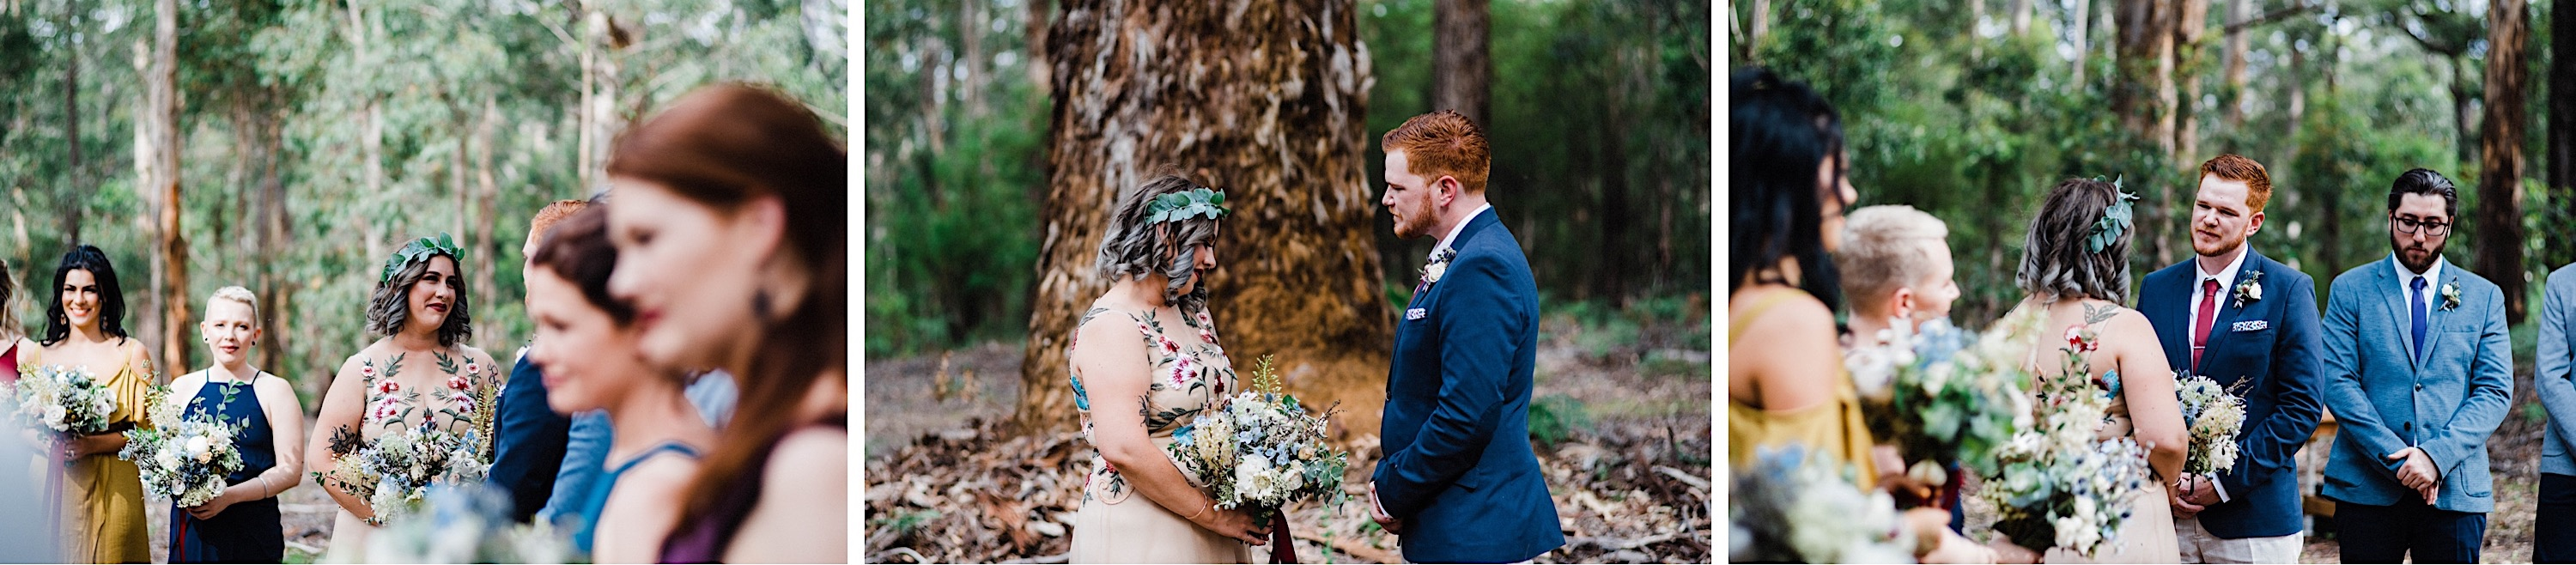 A tryptich of the bride & groom sharing moments during their Bridgetown Wedding Ceremony in the Karri Forest.